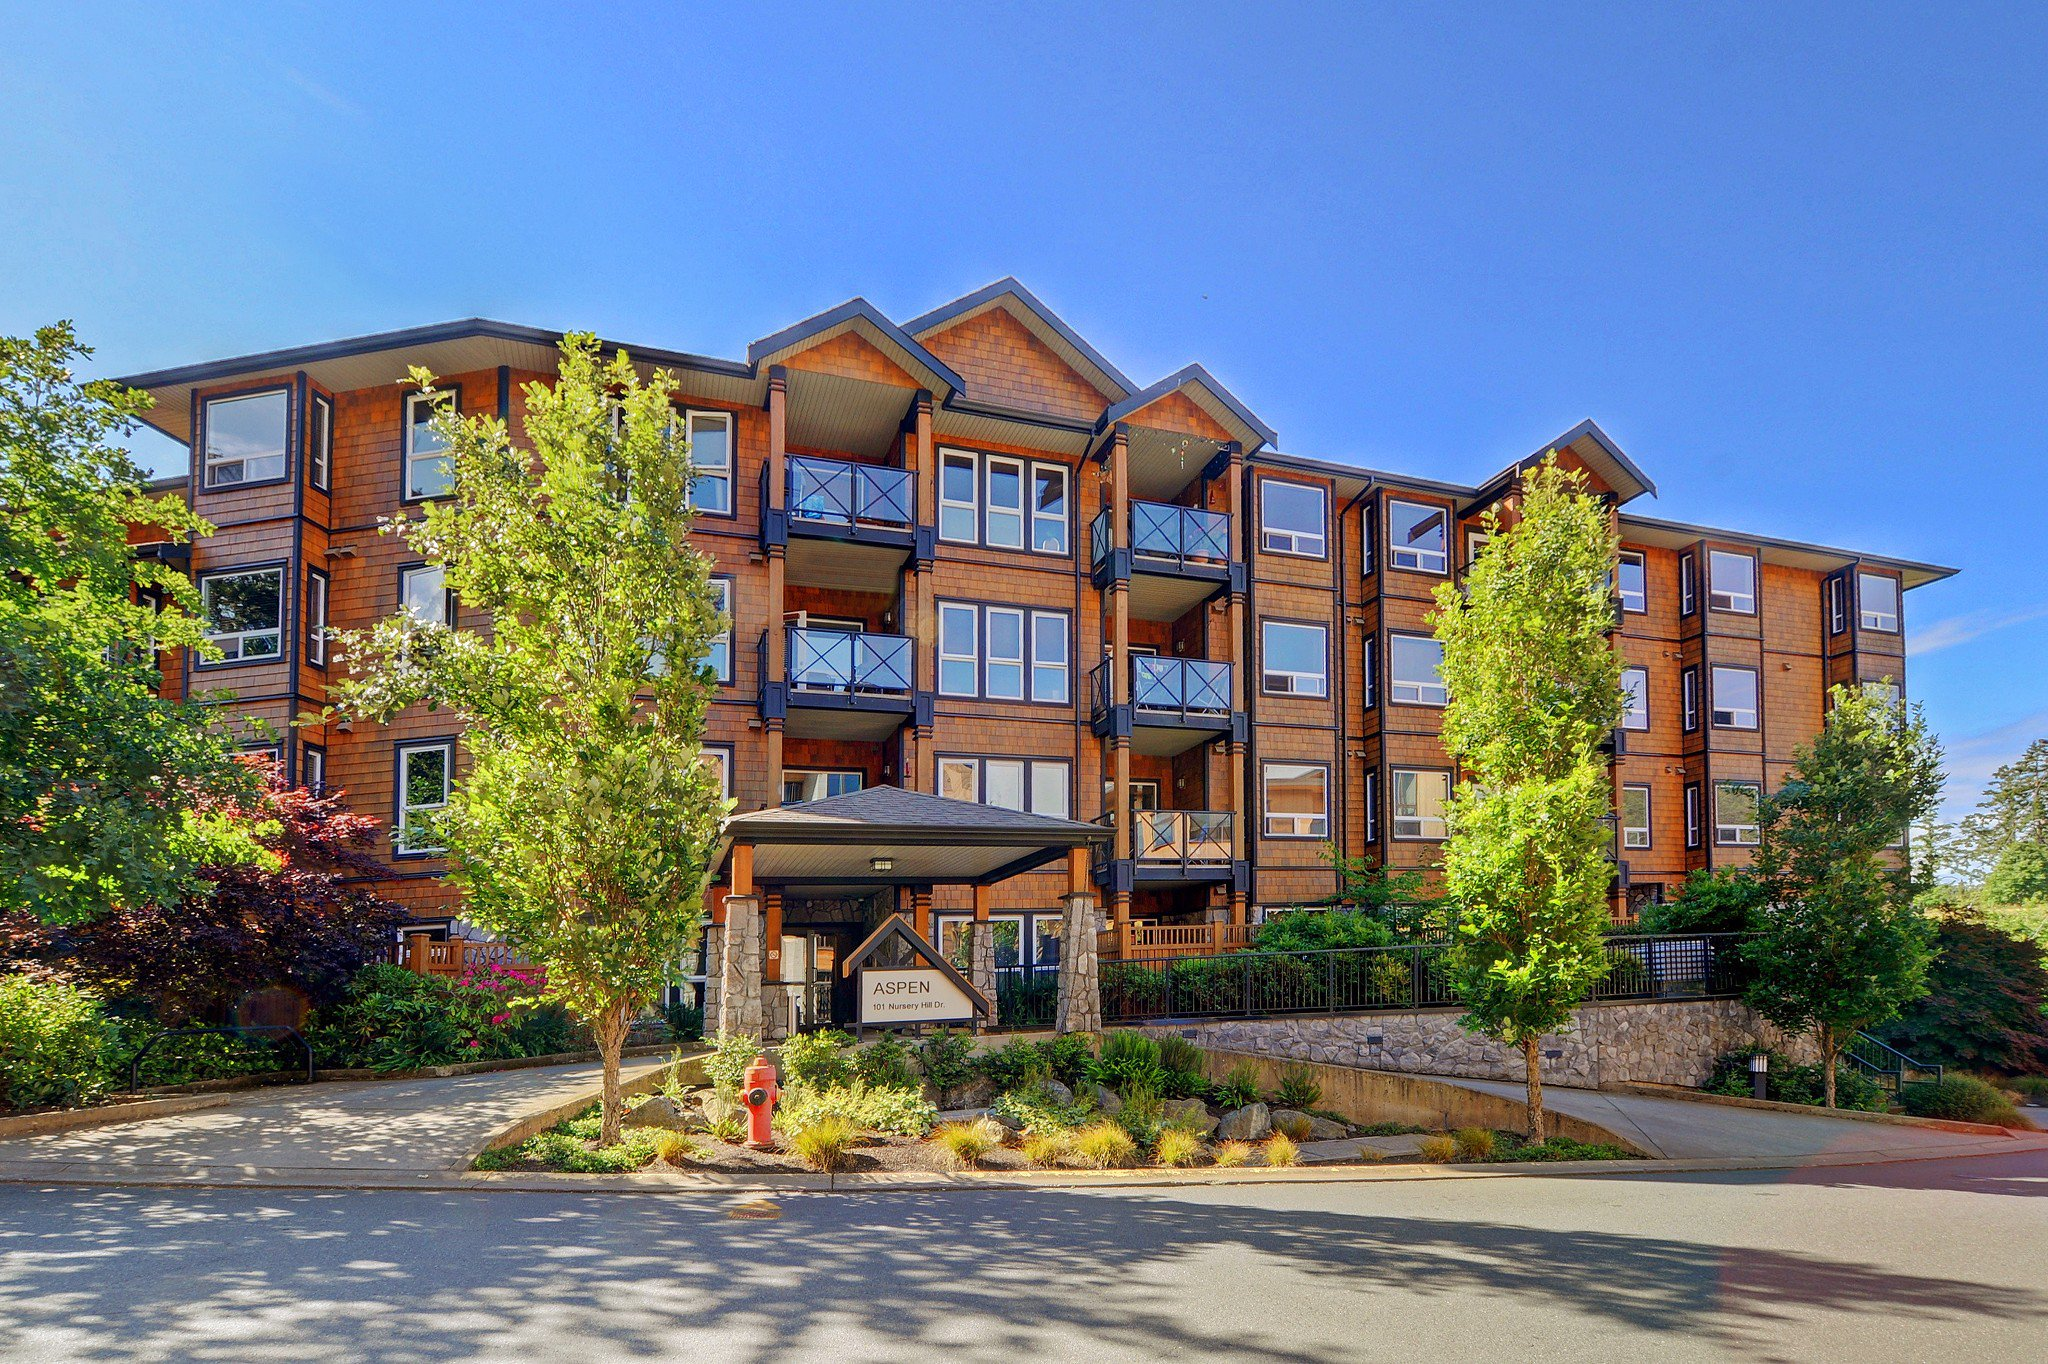 Main Photo: 105 101 Nursery Hill Dr in VICTORIA: VR Six Mile Condo for sale (View Royal)  : MLS®# 825166